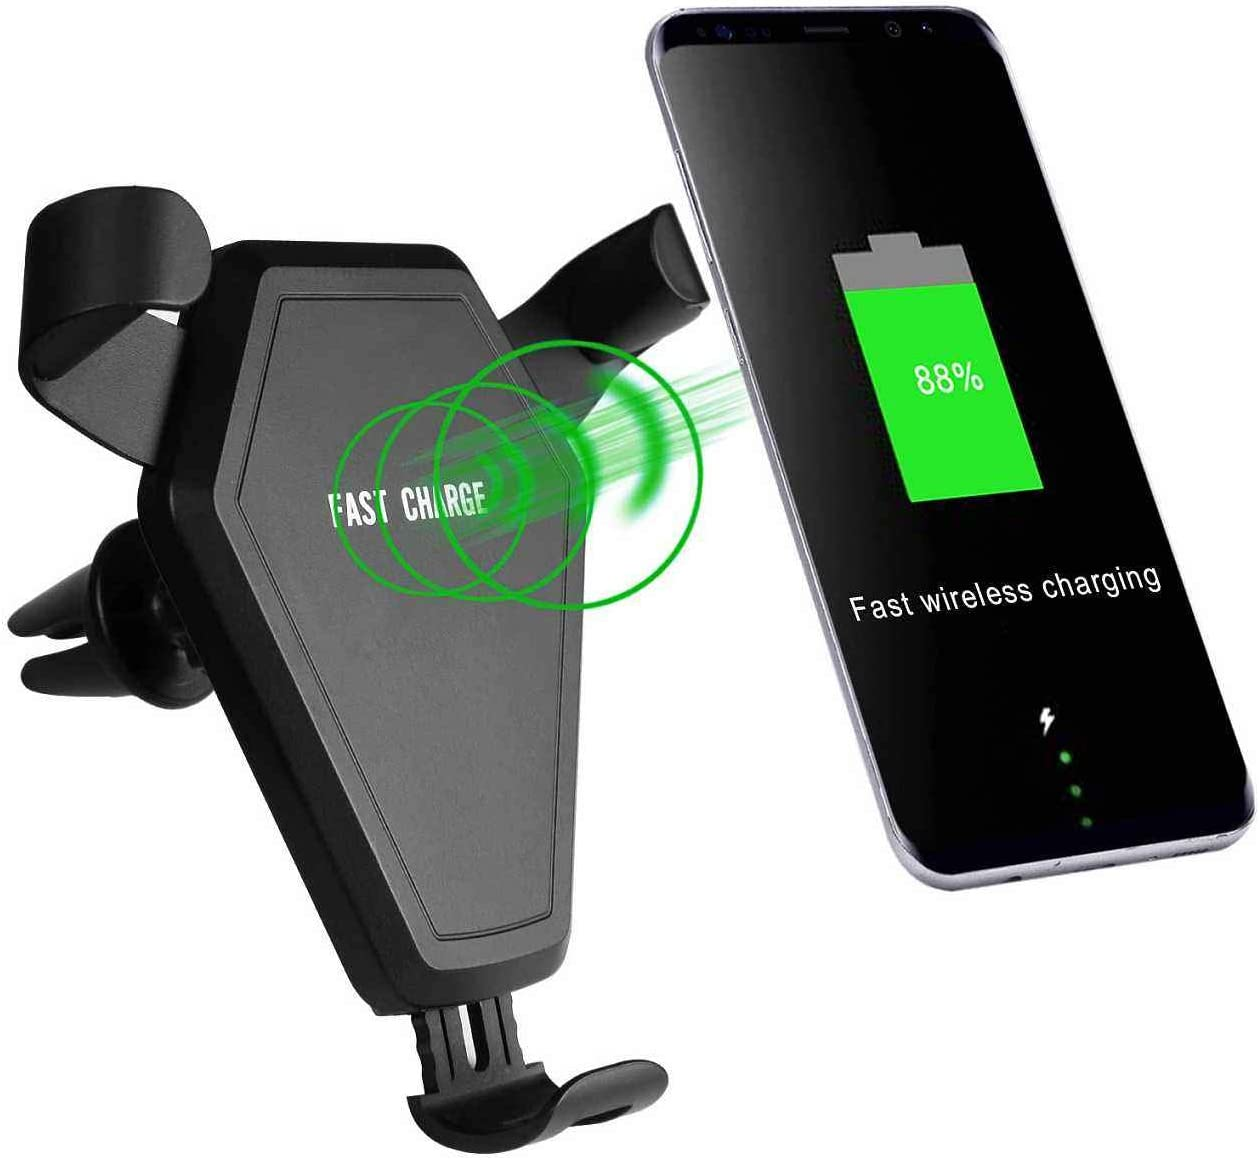 Huawei and More-Red Car Phone Mount Gravity Car Phone Stand Hands Free Cradle Compatible with iPhone 11 XS Max XR X 8 7 6 Plus Samsung Galaxy S10 S9 S8 S7 LG FashionSky Car Air Vent Clip Holder